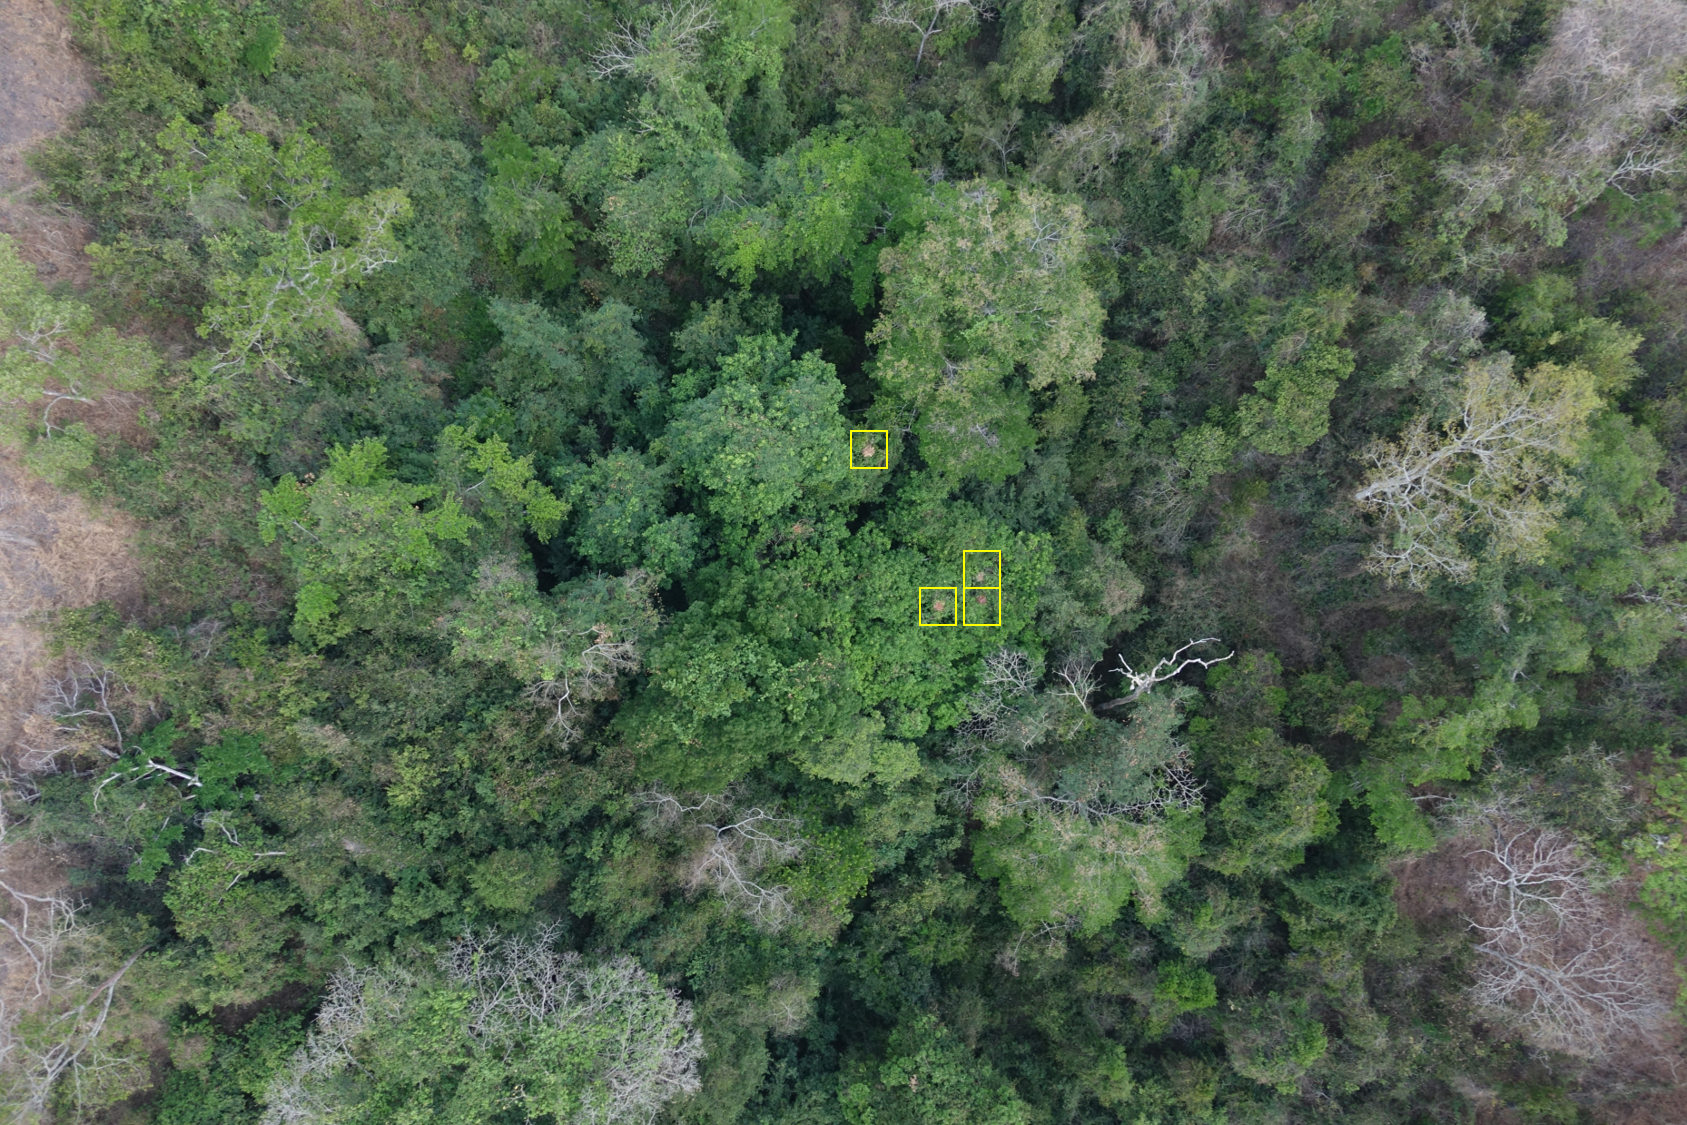 Chimpanzee nests highlighted from the air.